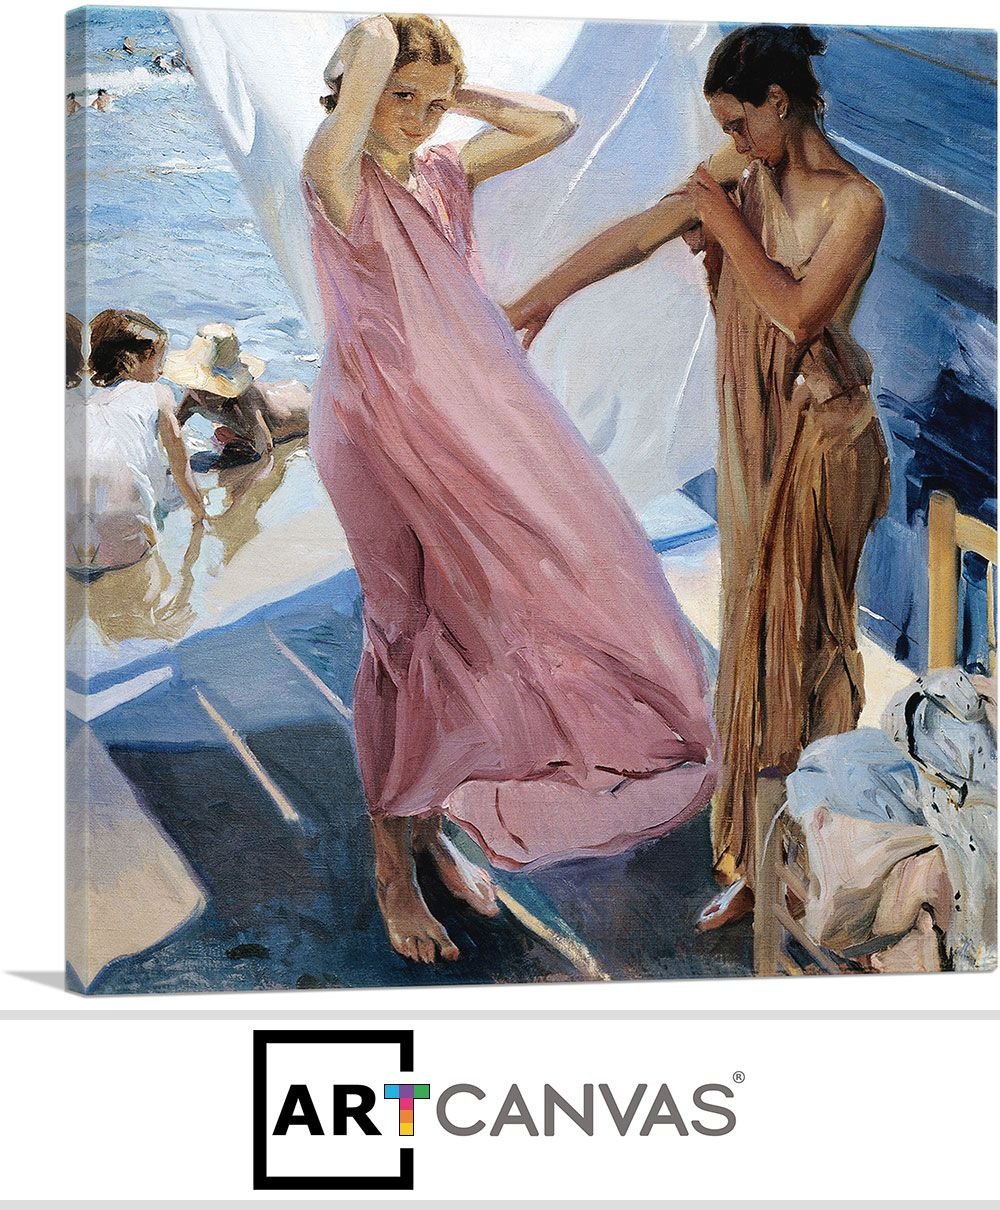 After Bathing Valencia Joaquin Sorolla Google Art Project